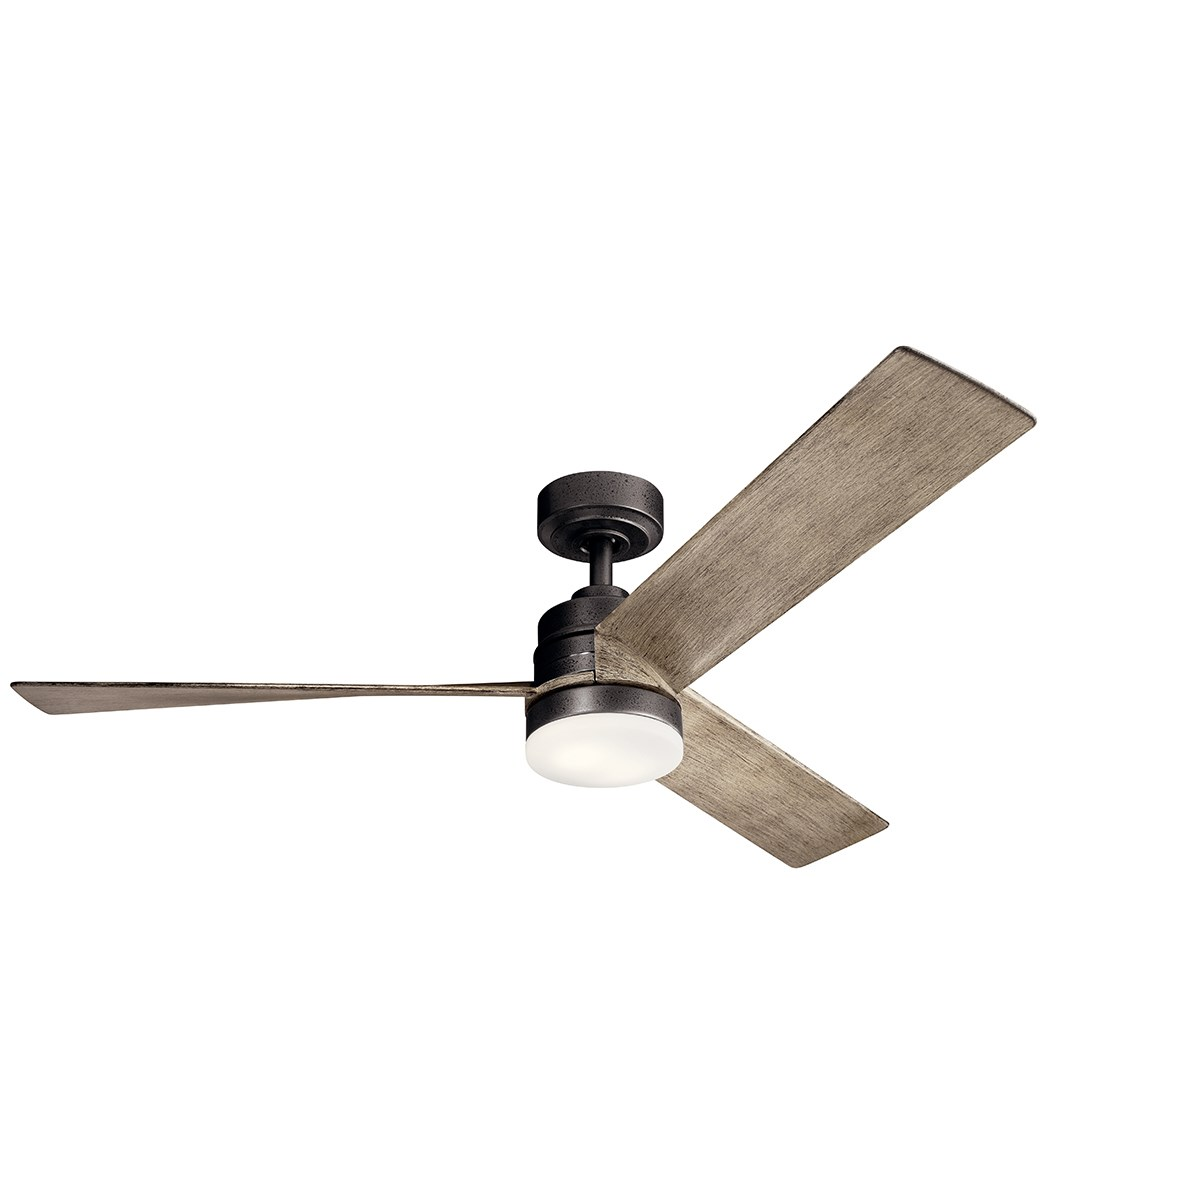 KIC 300275AVI 52 Inch Spyn Fan LED NEWSTOCK AUG 2019